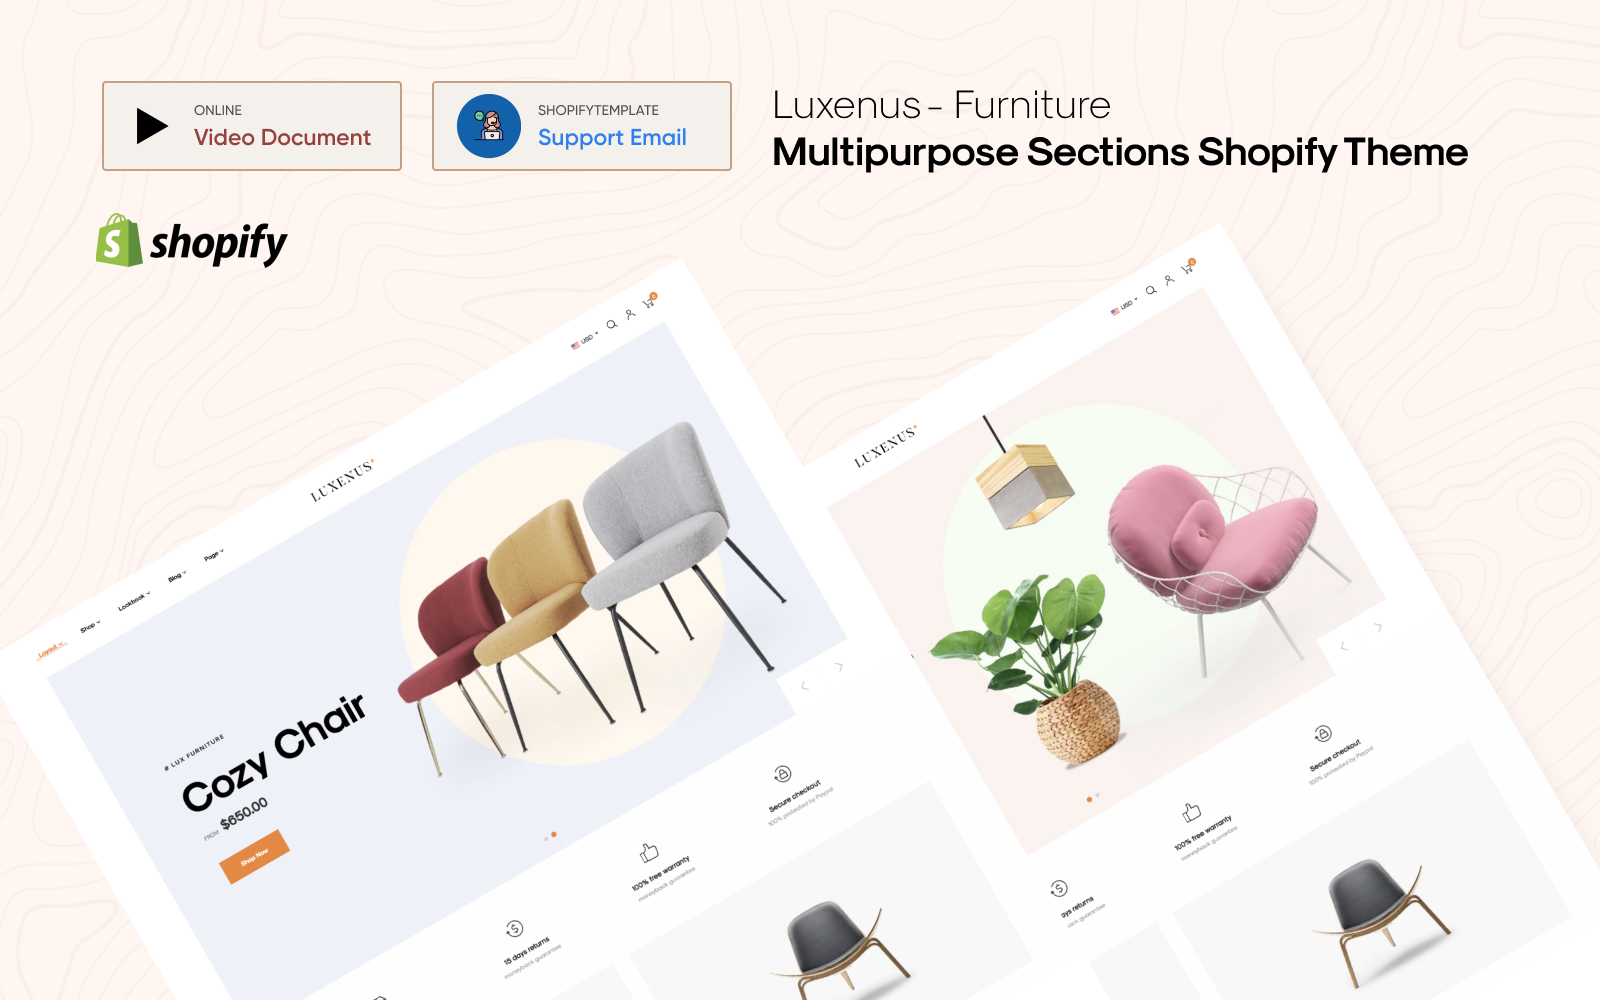 Luxenus - Multipurpose Sections Shopify Theme